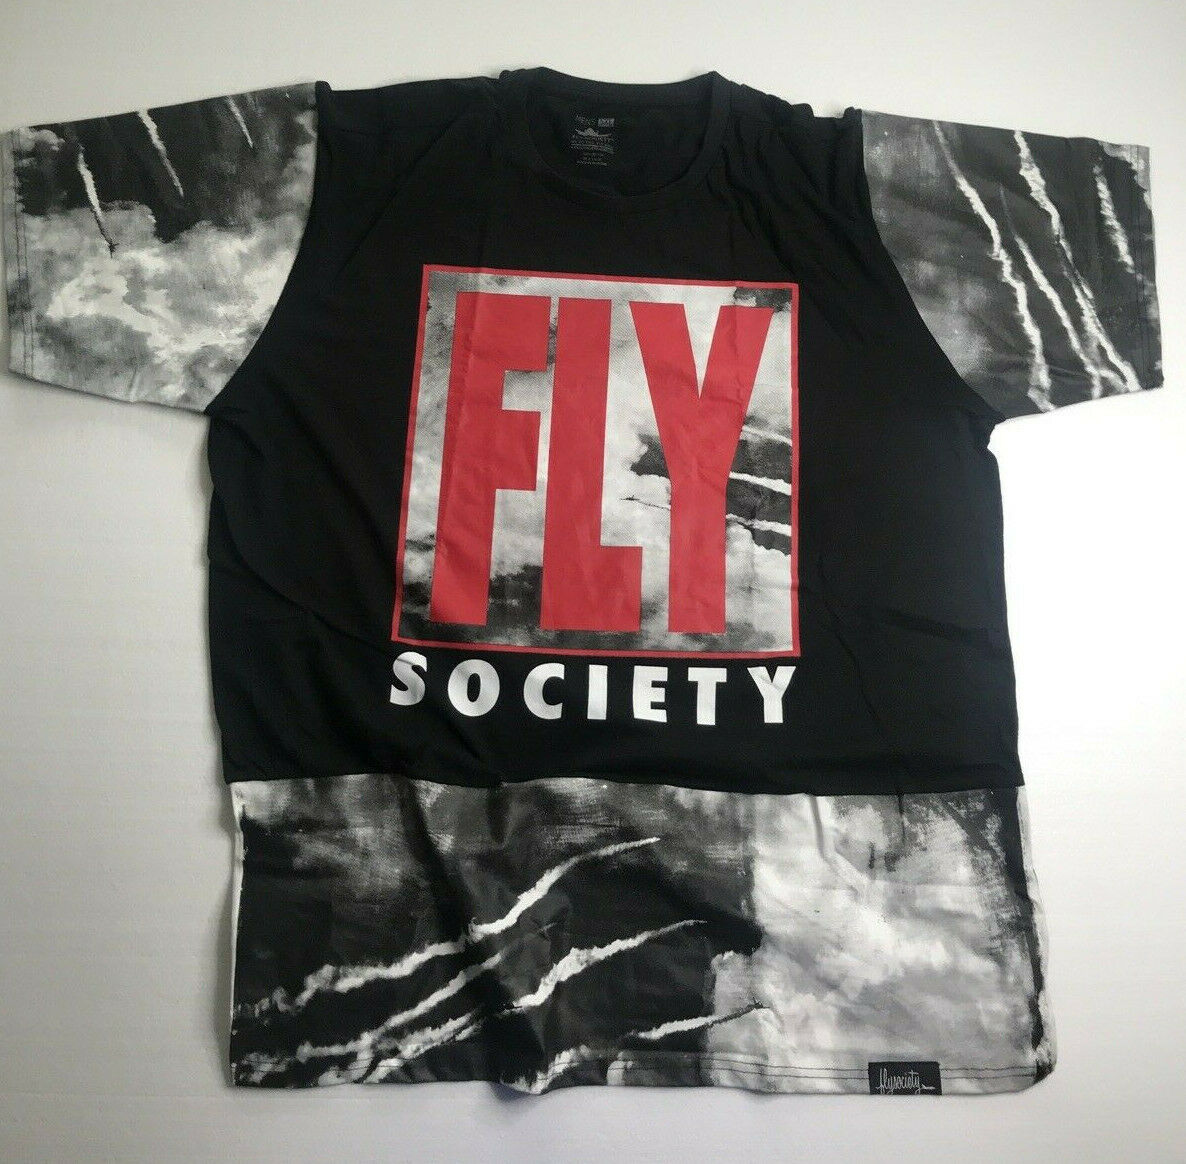 5XL Fly Society Black Red Rare & Unique Graphic Designed Styled T Shirt Top